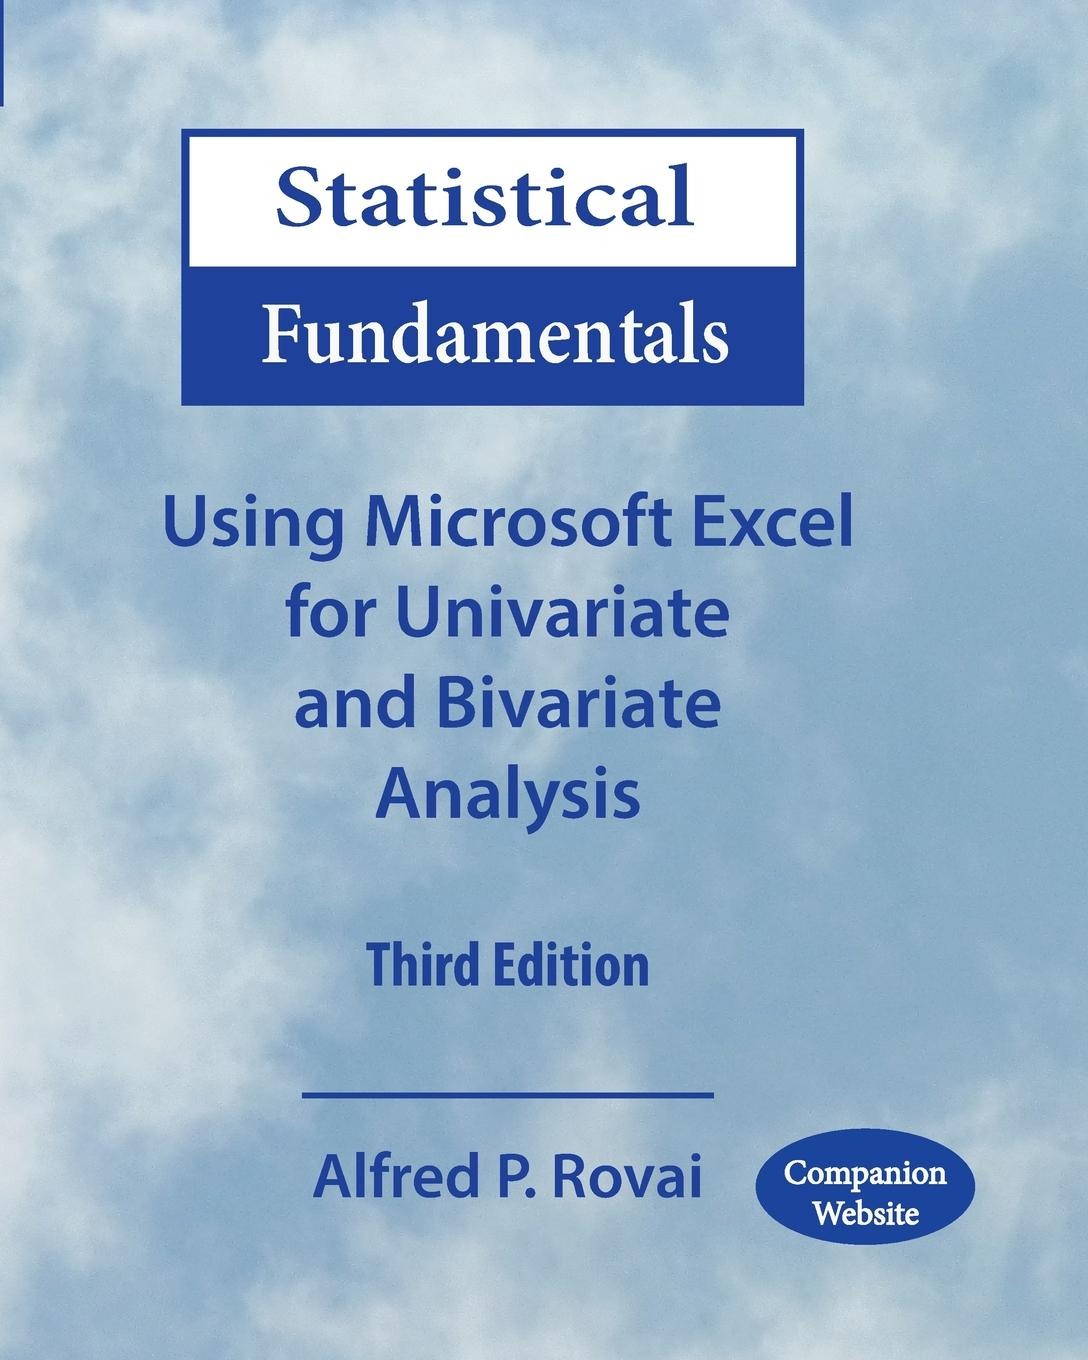 Alfred P. Rovai Statistical Fundamentals. Using Microsoft Excel for Univariate and Bivariate Analysis